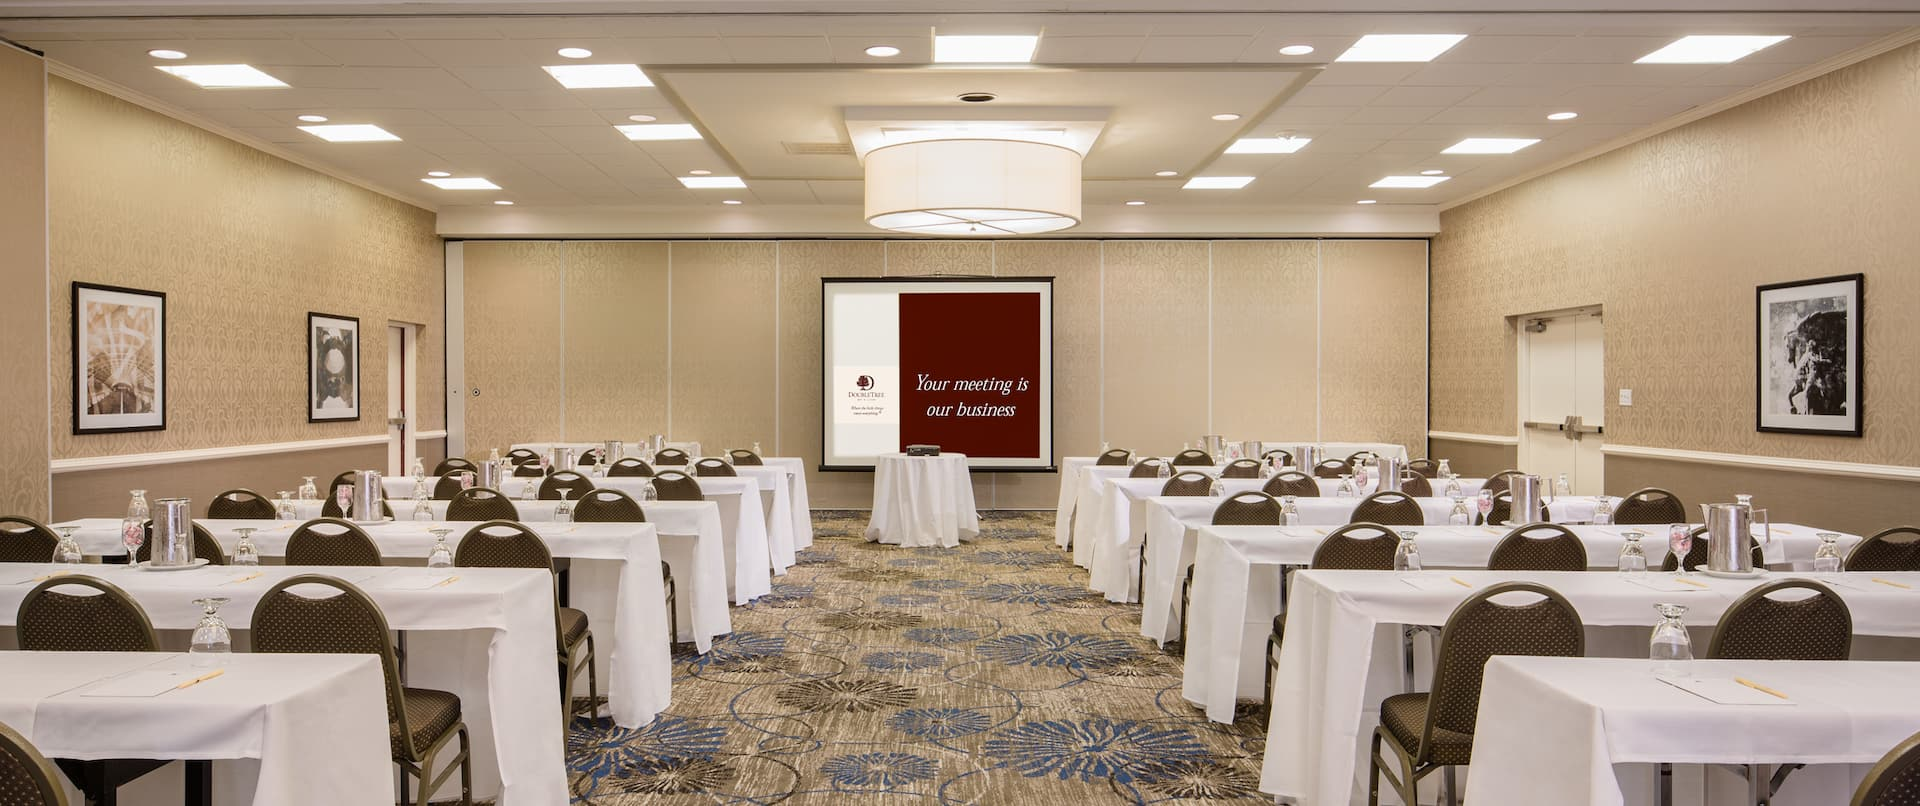 Classroom Setup in Ballroom With Wall Art, Tables and Chairs Facing Projector Table and Presentation Screen